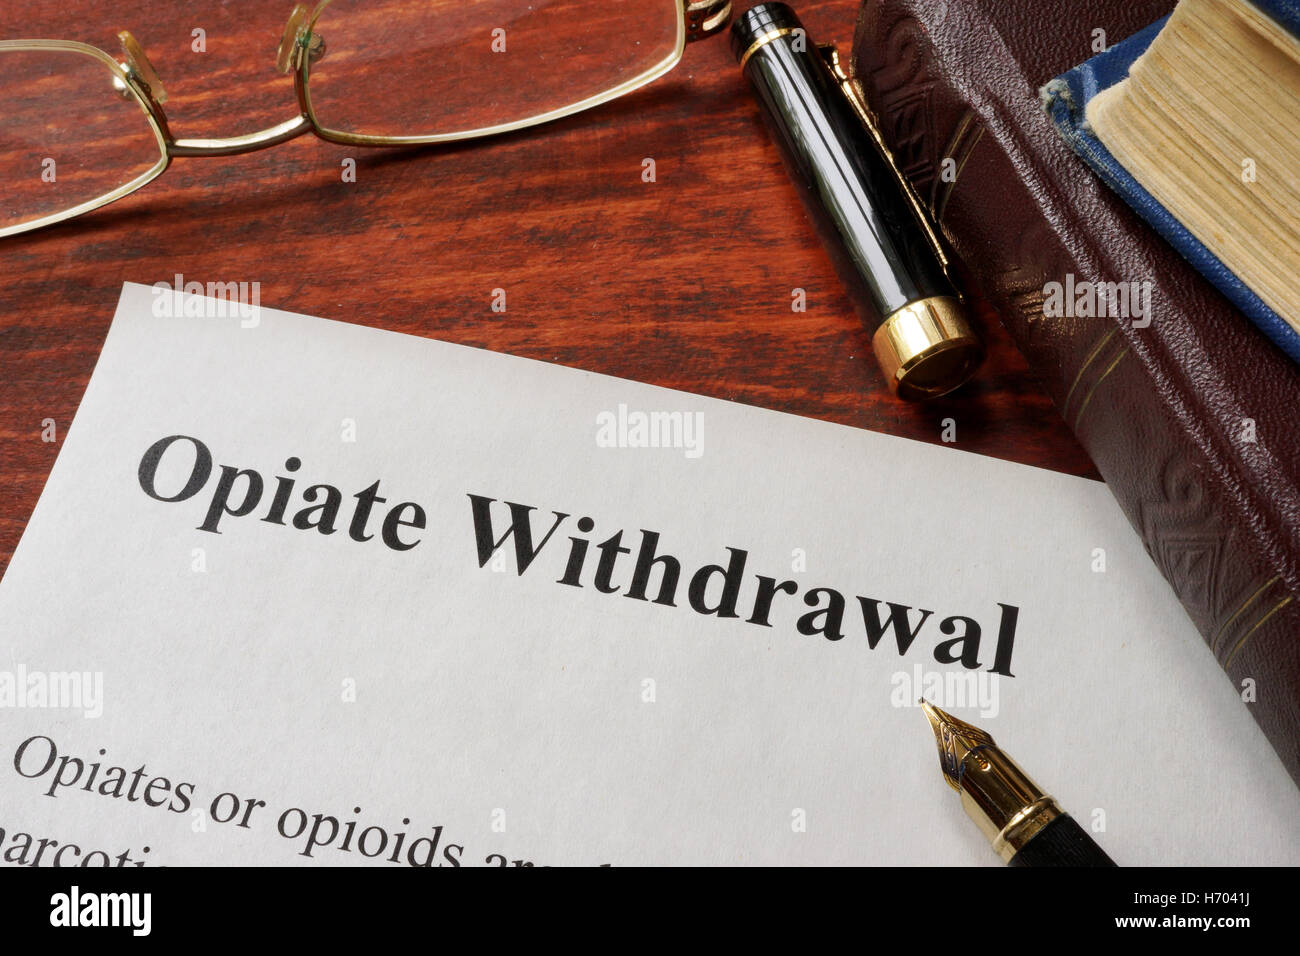 Opiate withdrawal written on a paper. Drugs addiction concept. - Stock Image